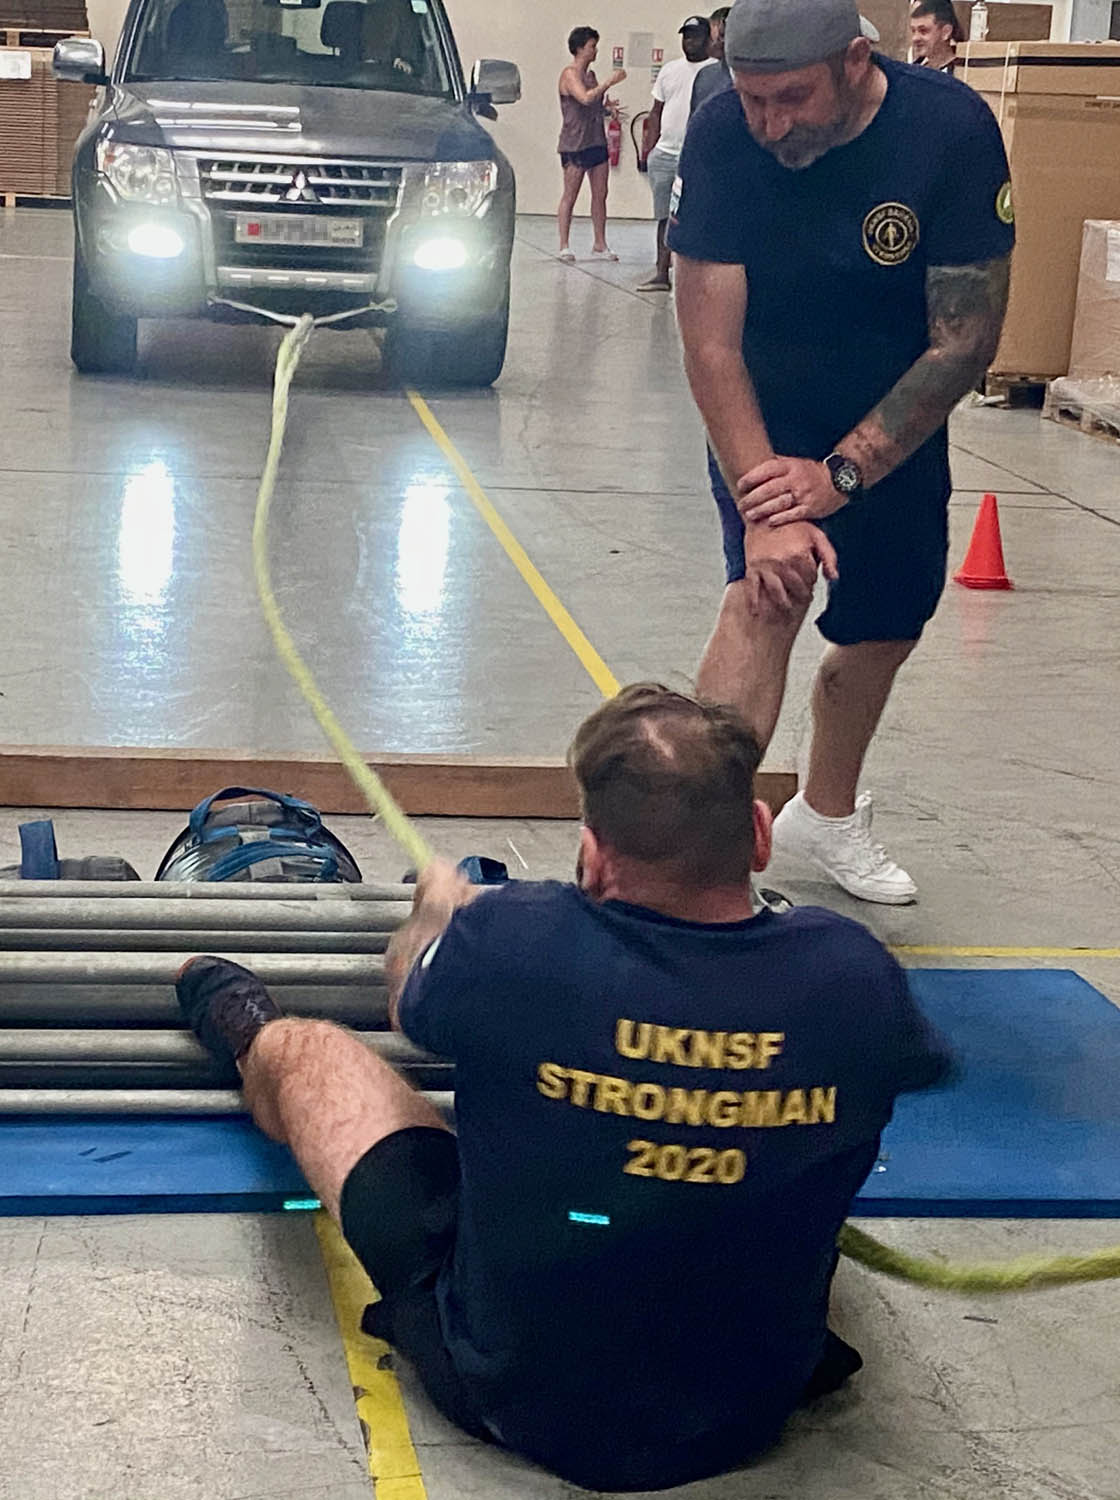 A Royal Navy sailor pulls car in strongest man compeition